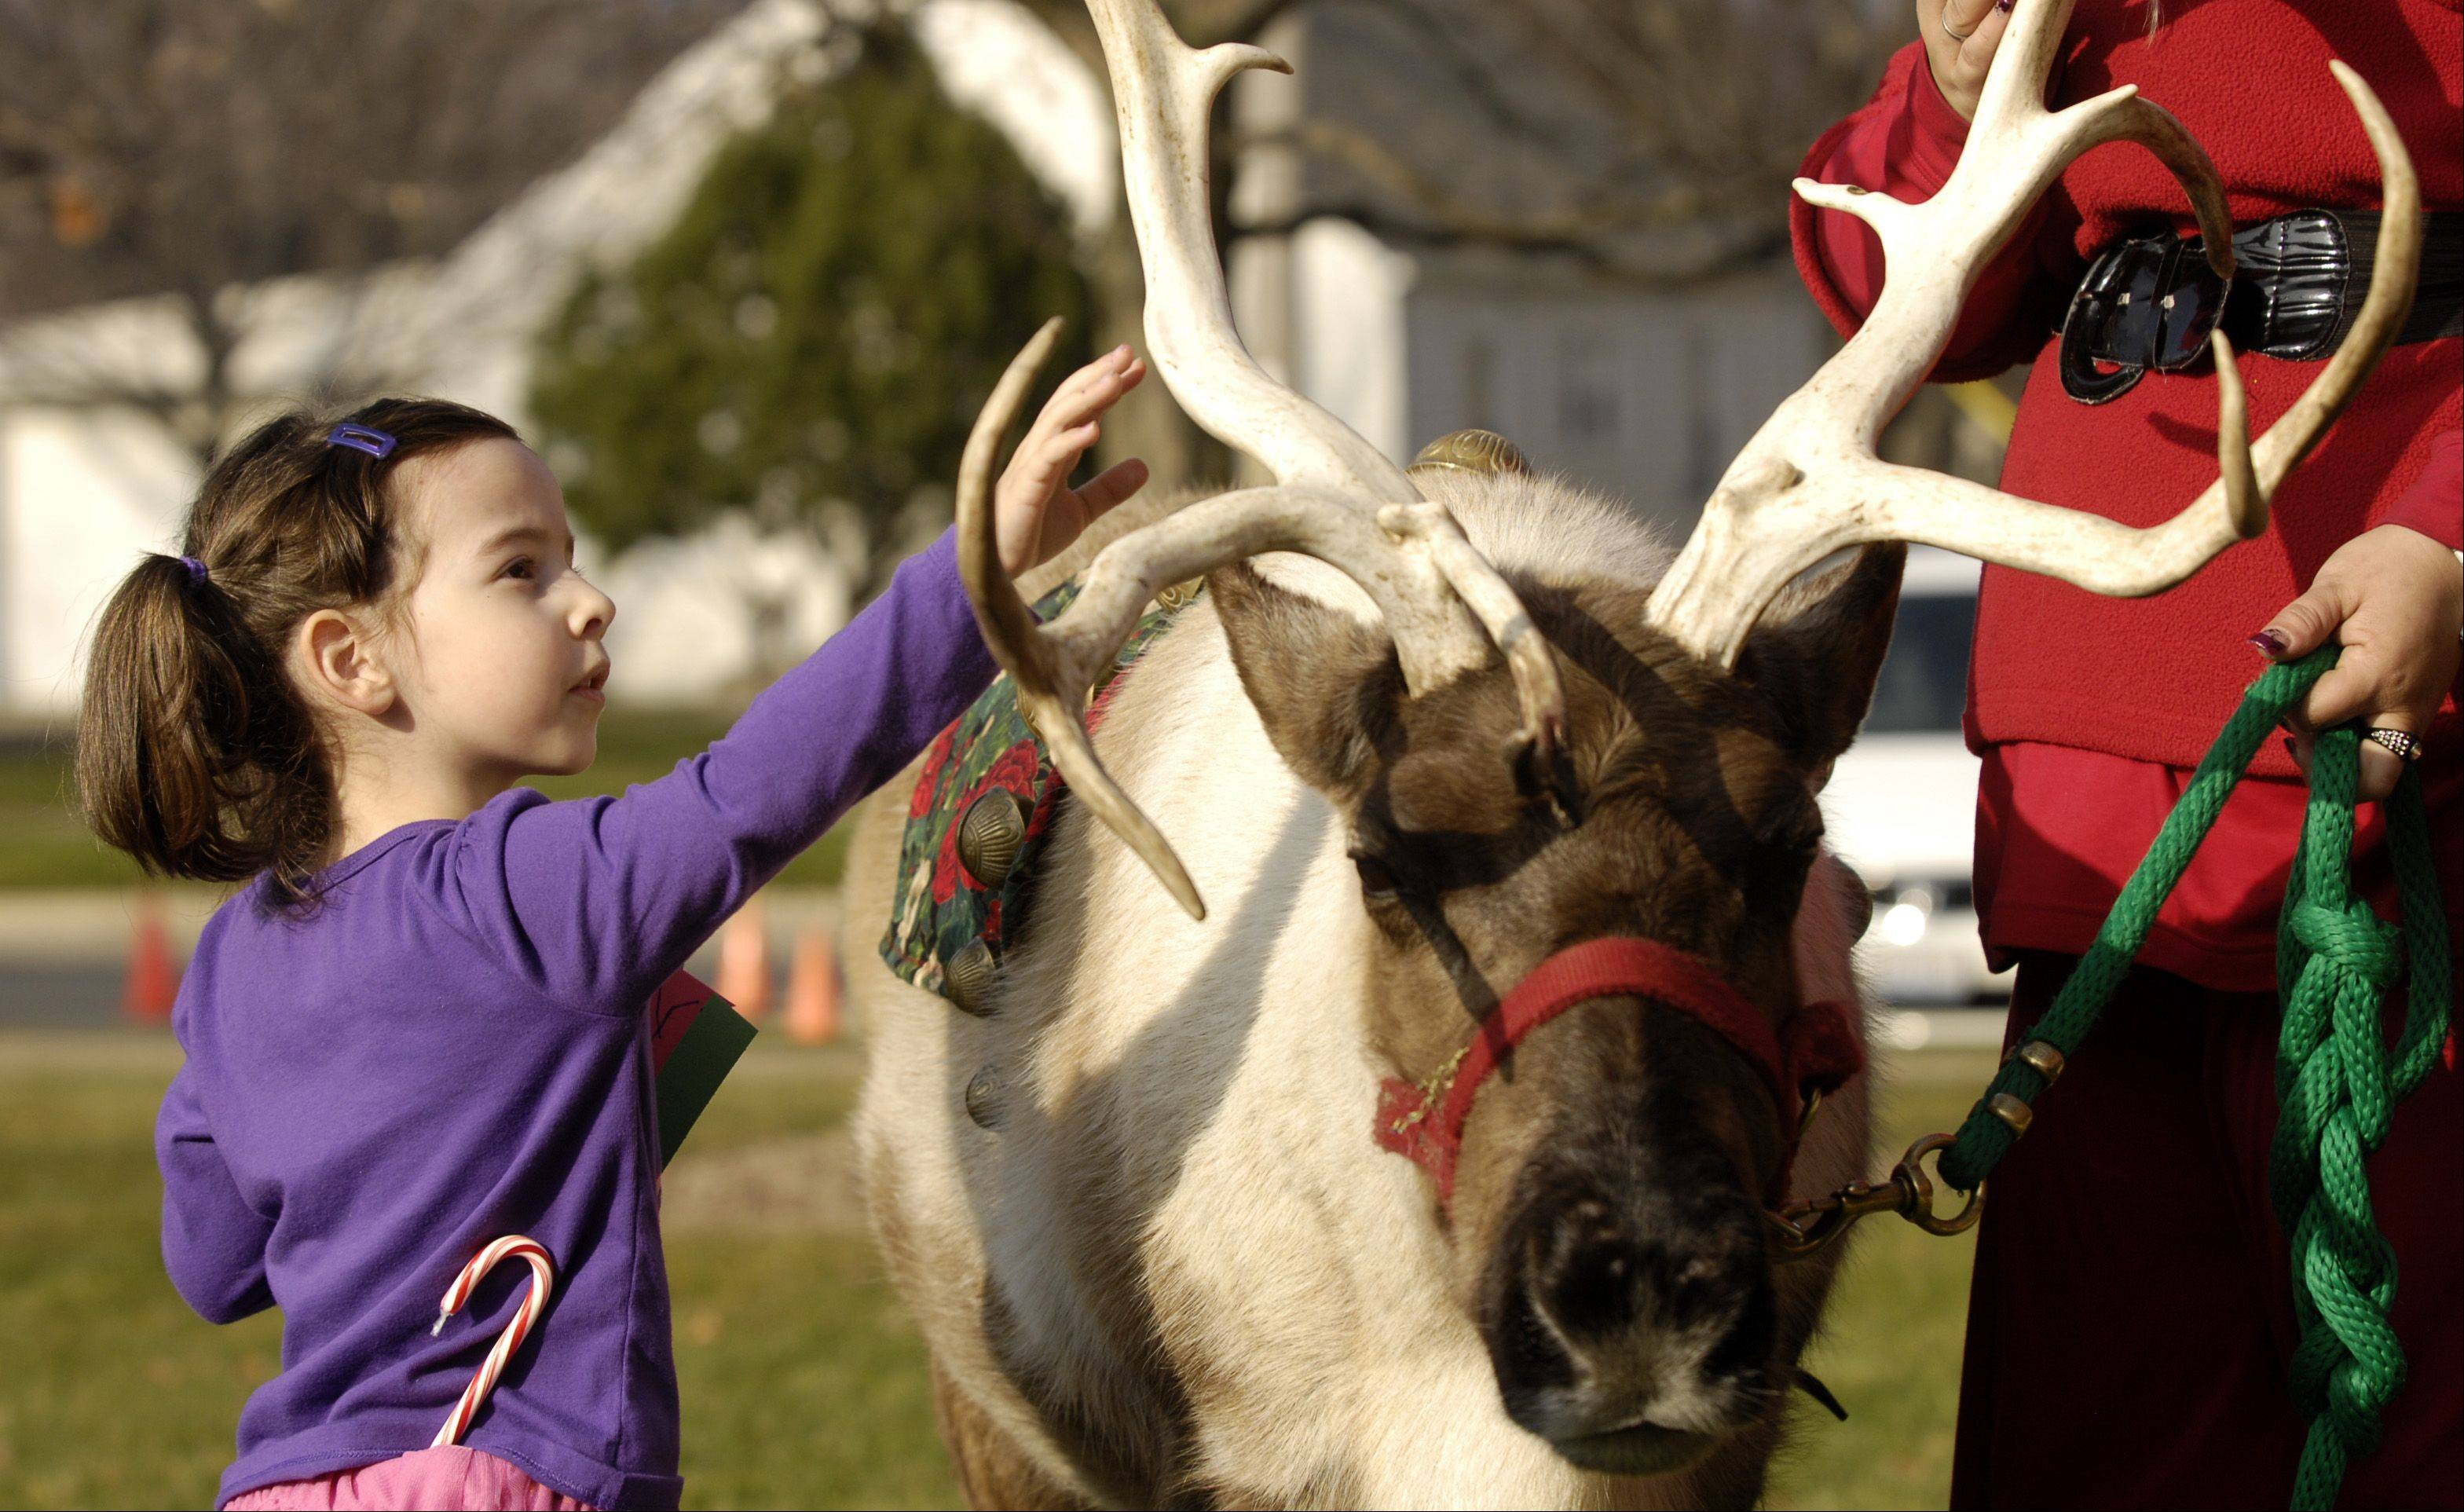 Ruby McCowan, 4, of Joliet, pets a reindeer during Lisle's Once Upon a Christmas celebration Sunday at Lisle Station Park.